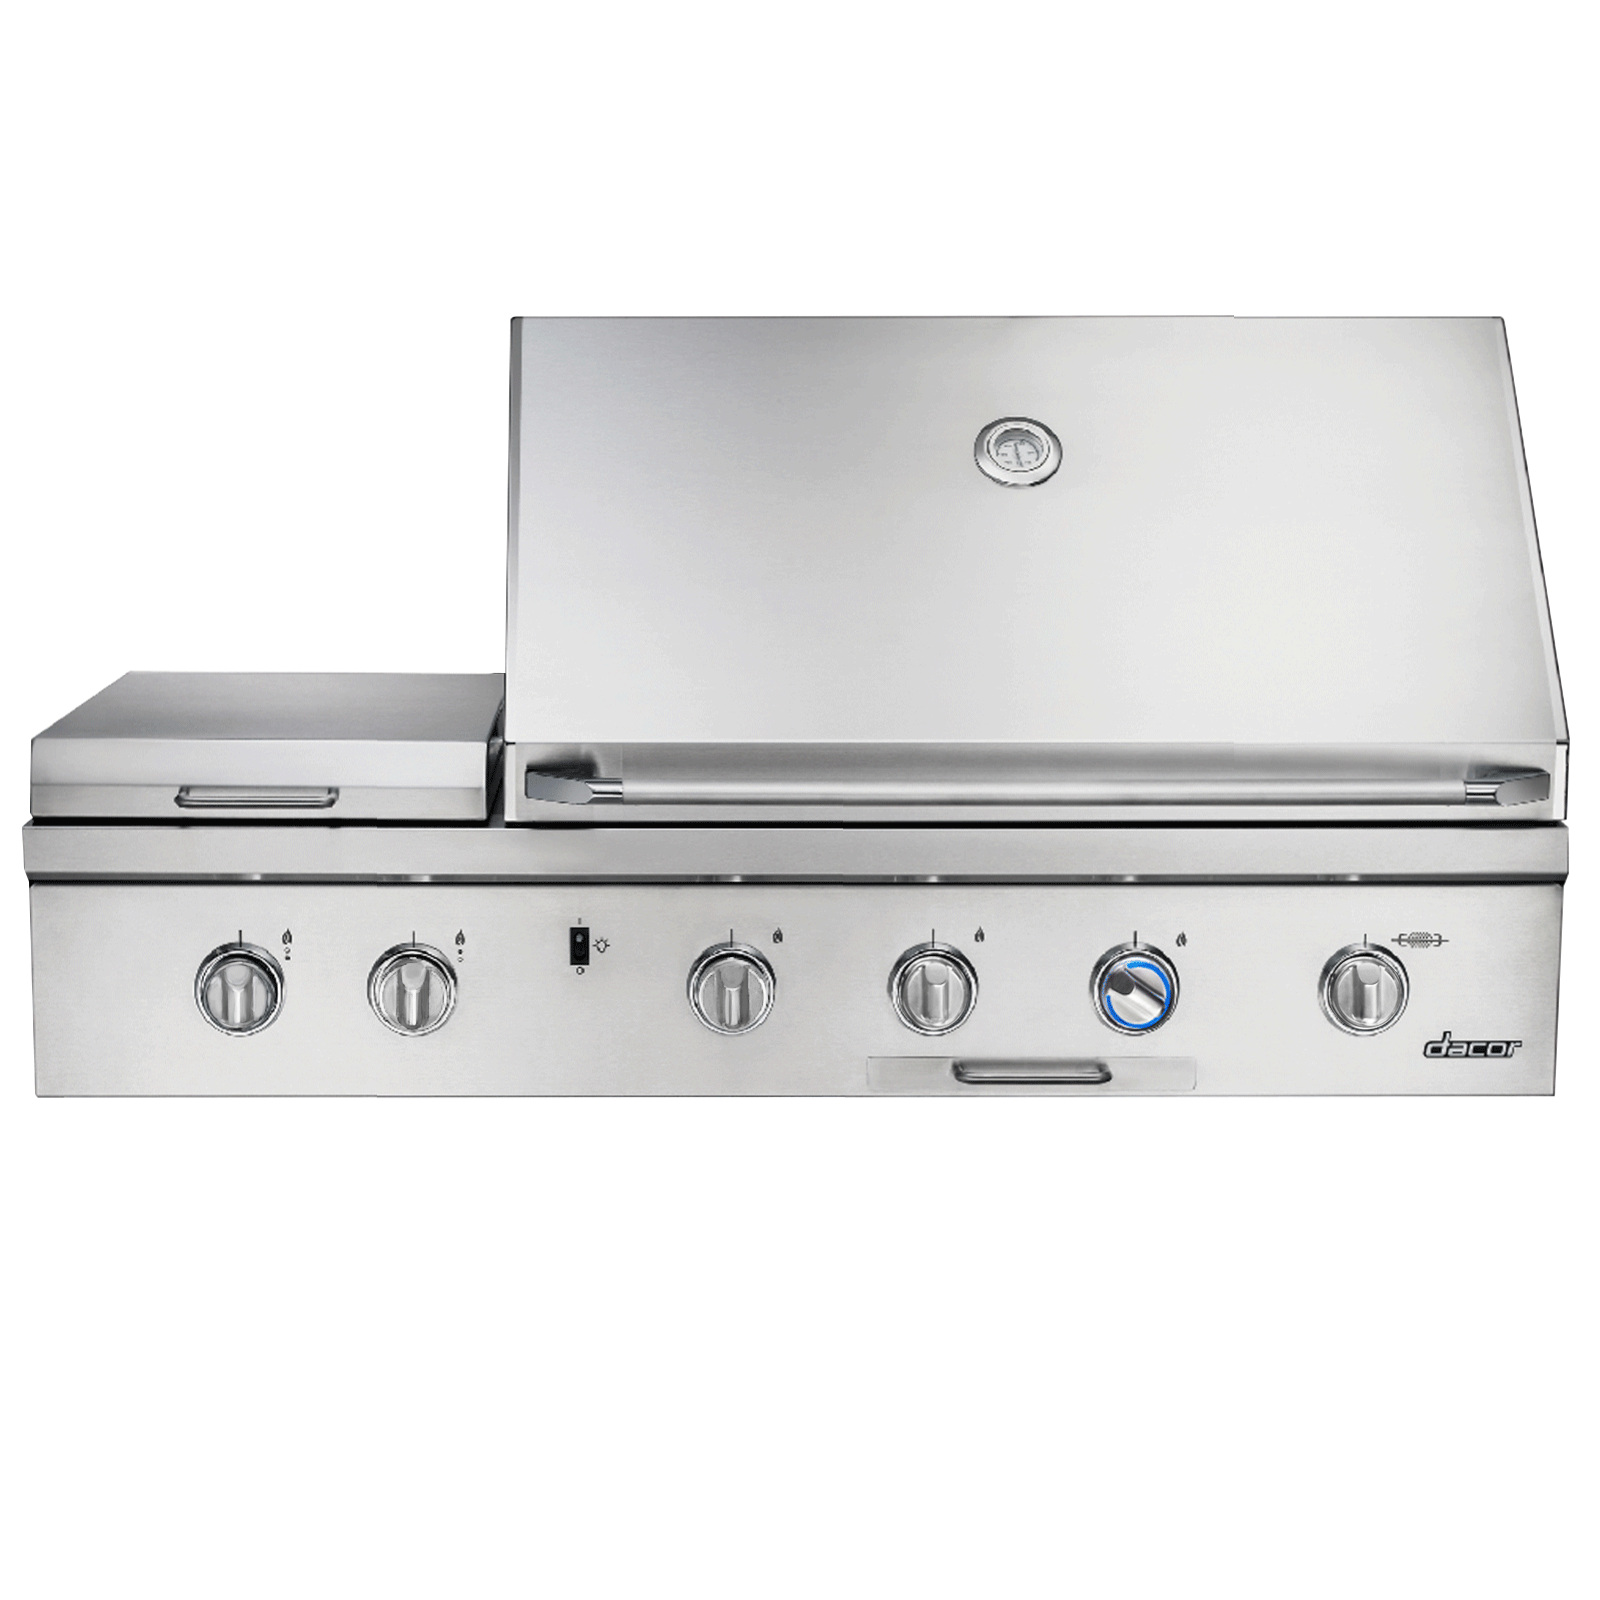 "Model: OB52/NG | Dacor Heritage 52"" Outdoor Grill, in Stainless Steel with Chrome Trim, for use with Natural Gas"